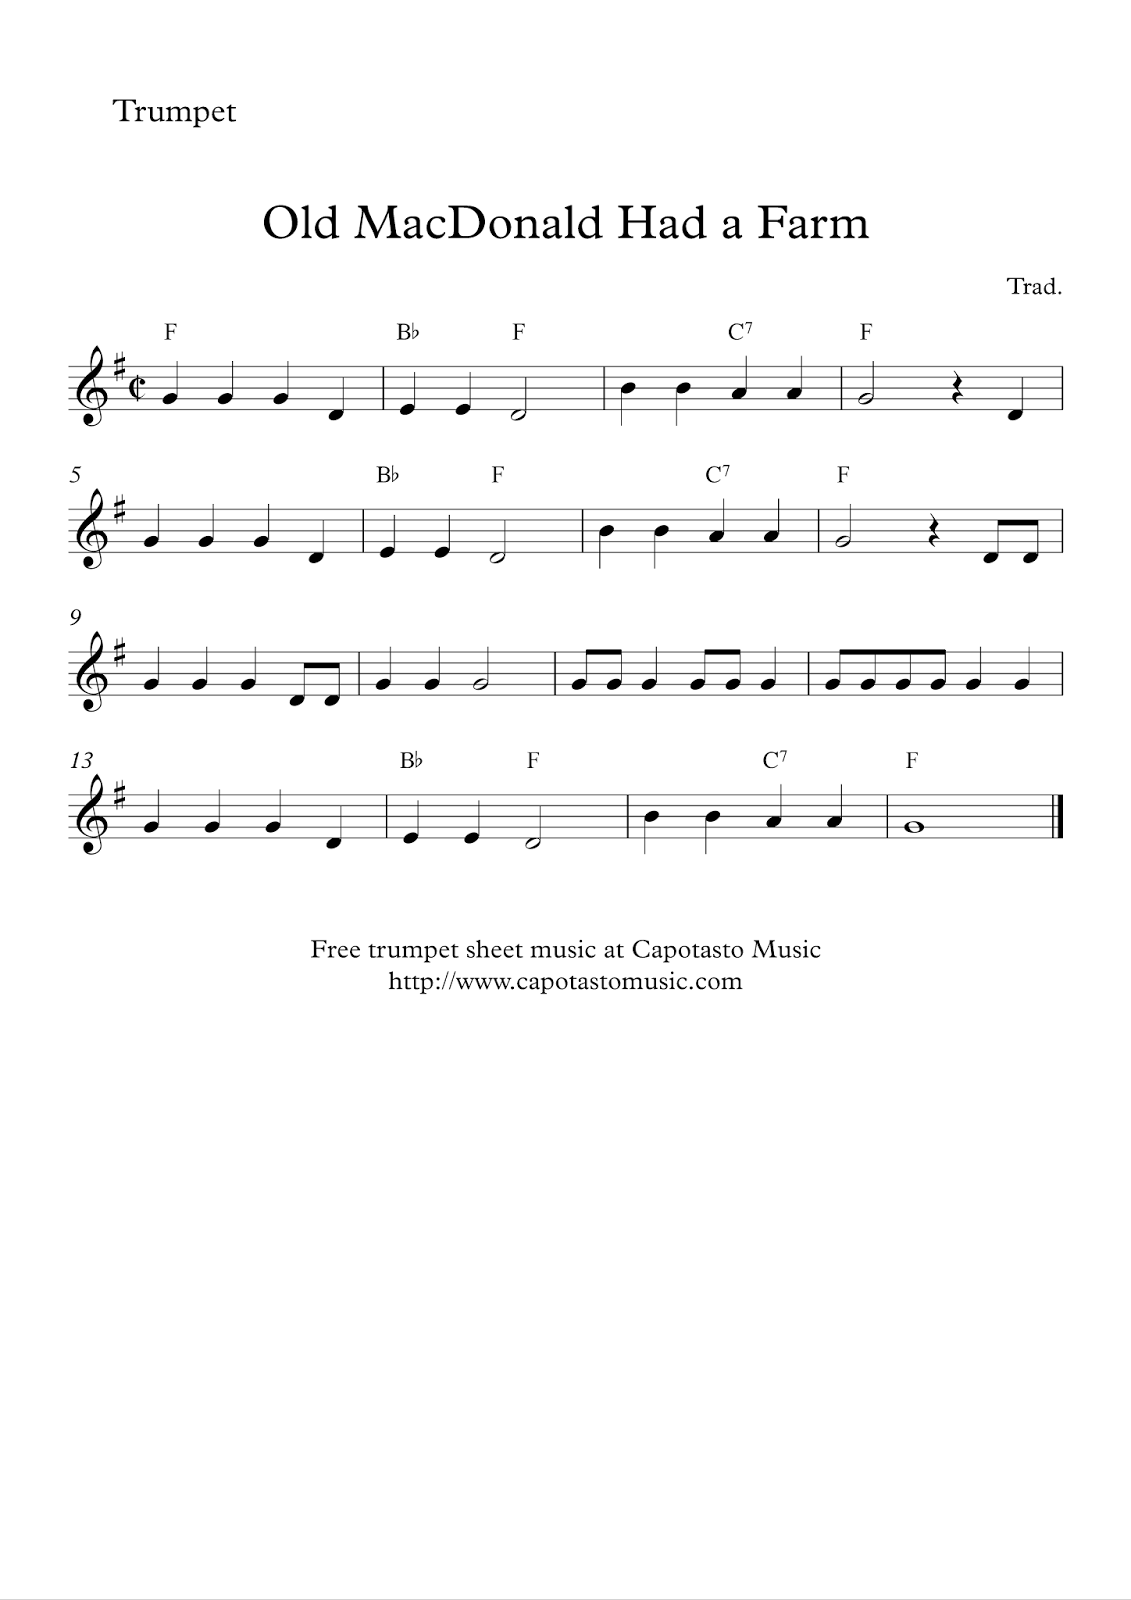 Free easy trumpet sheet music - Old MacDonald Had a Farm